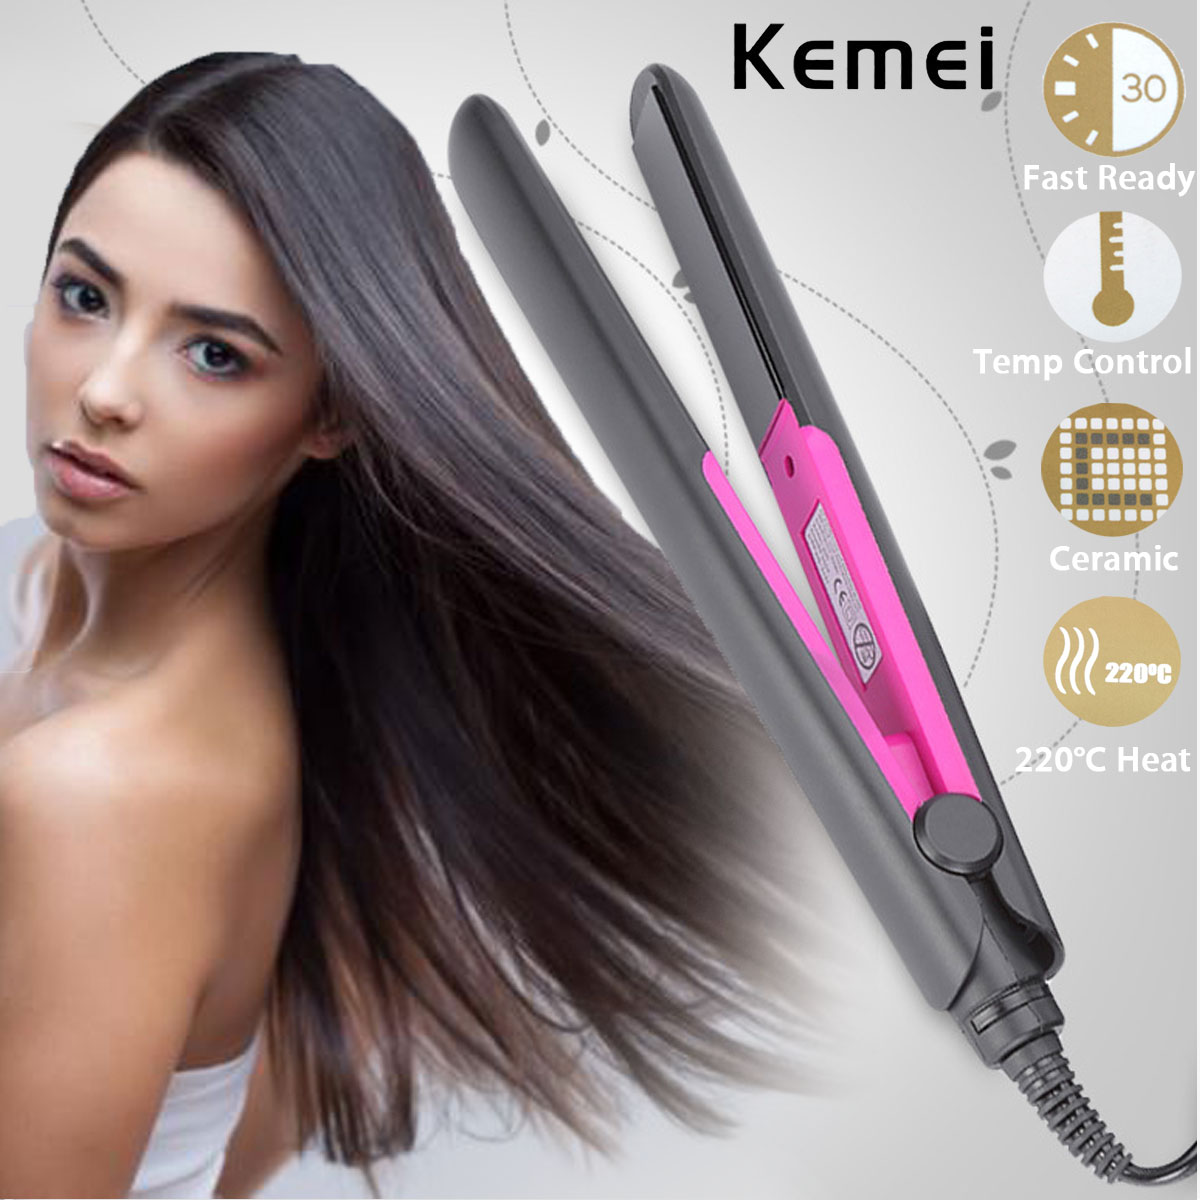 KEMEI Professional Straightening Irons Fast Heating Flat Iron Styling Tools Ceramic Tourmaline Plate Perm Hair Straightener